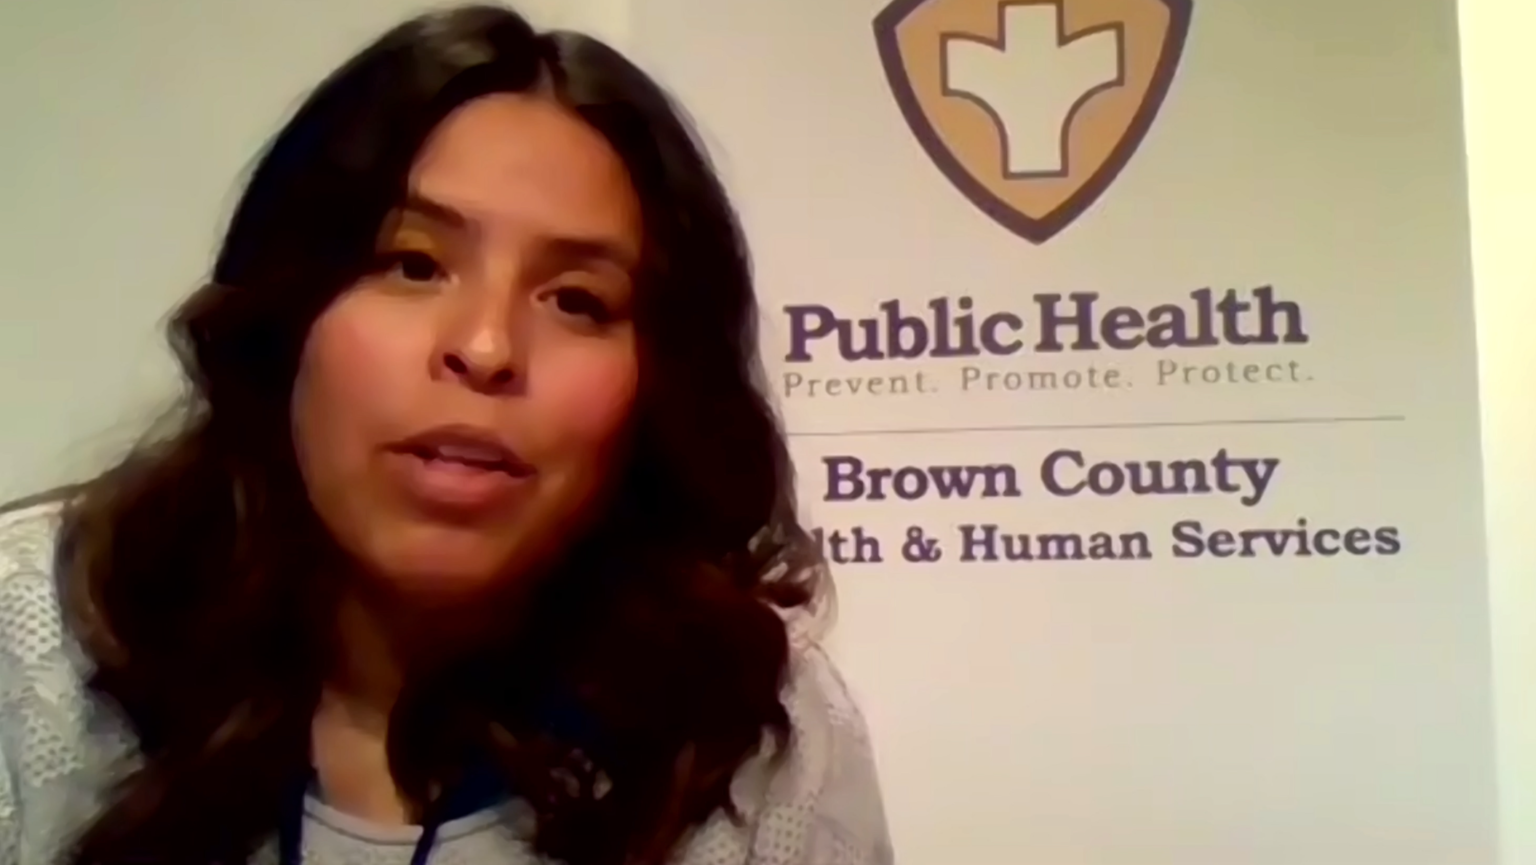 Claire Paprocki, a Brown County public health strategist, says we're trying to be all on the same team and attack this from the same angle, as the county faces an outbreak of COVID-19 cases in meat packing plants.